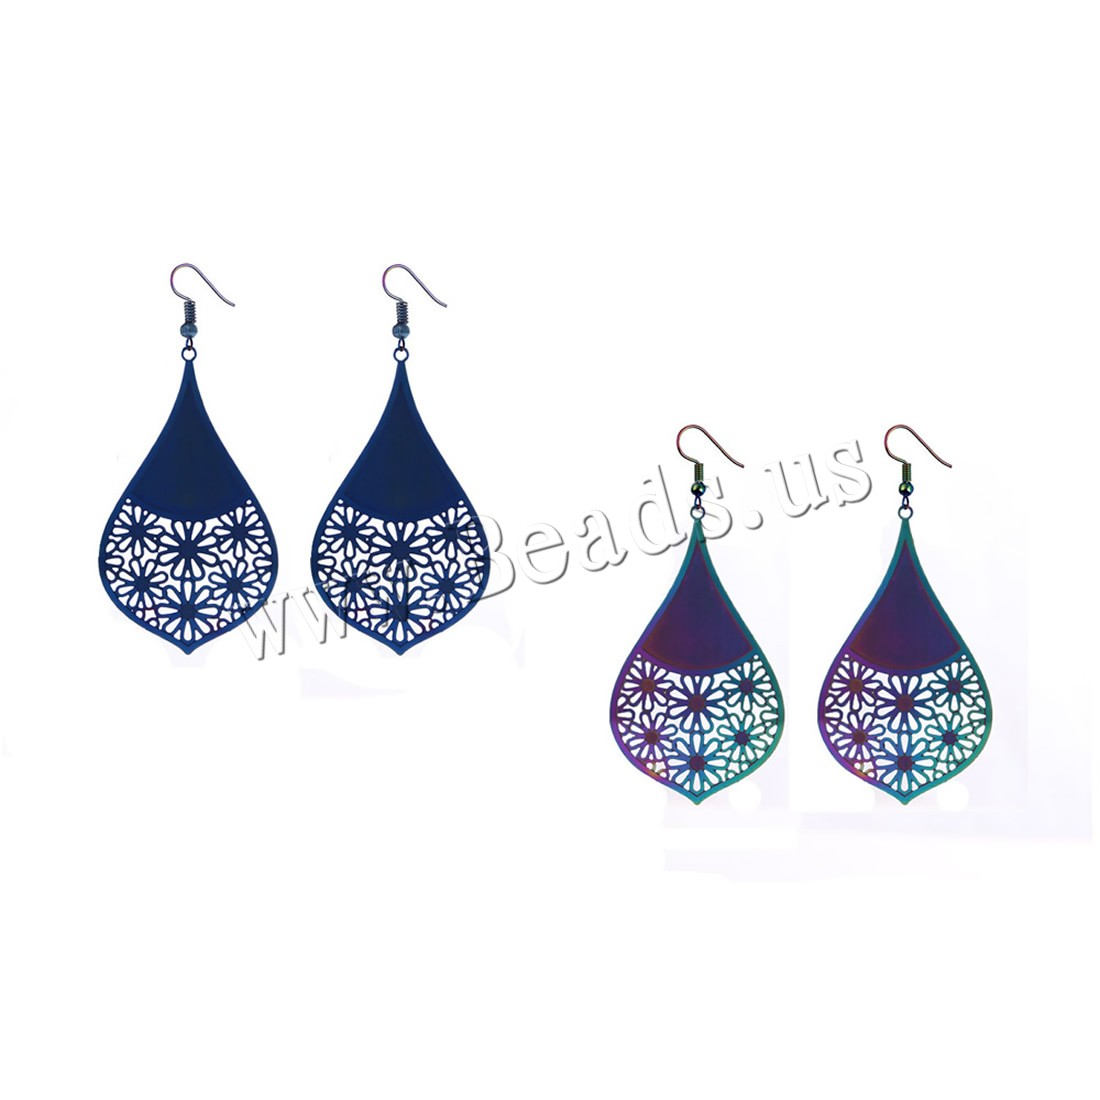 Buy Stainless Steel Drop Earring iron earring hook plated painted & woman colors choice nickel lead & cadmium free 58x35mm Sold Pair